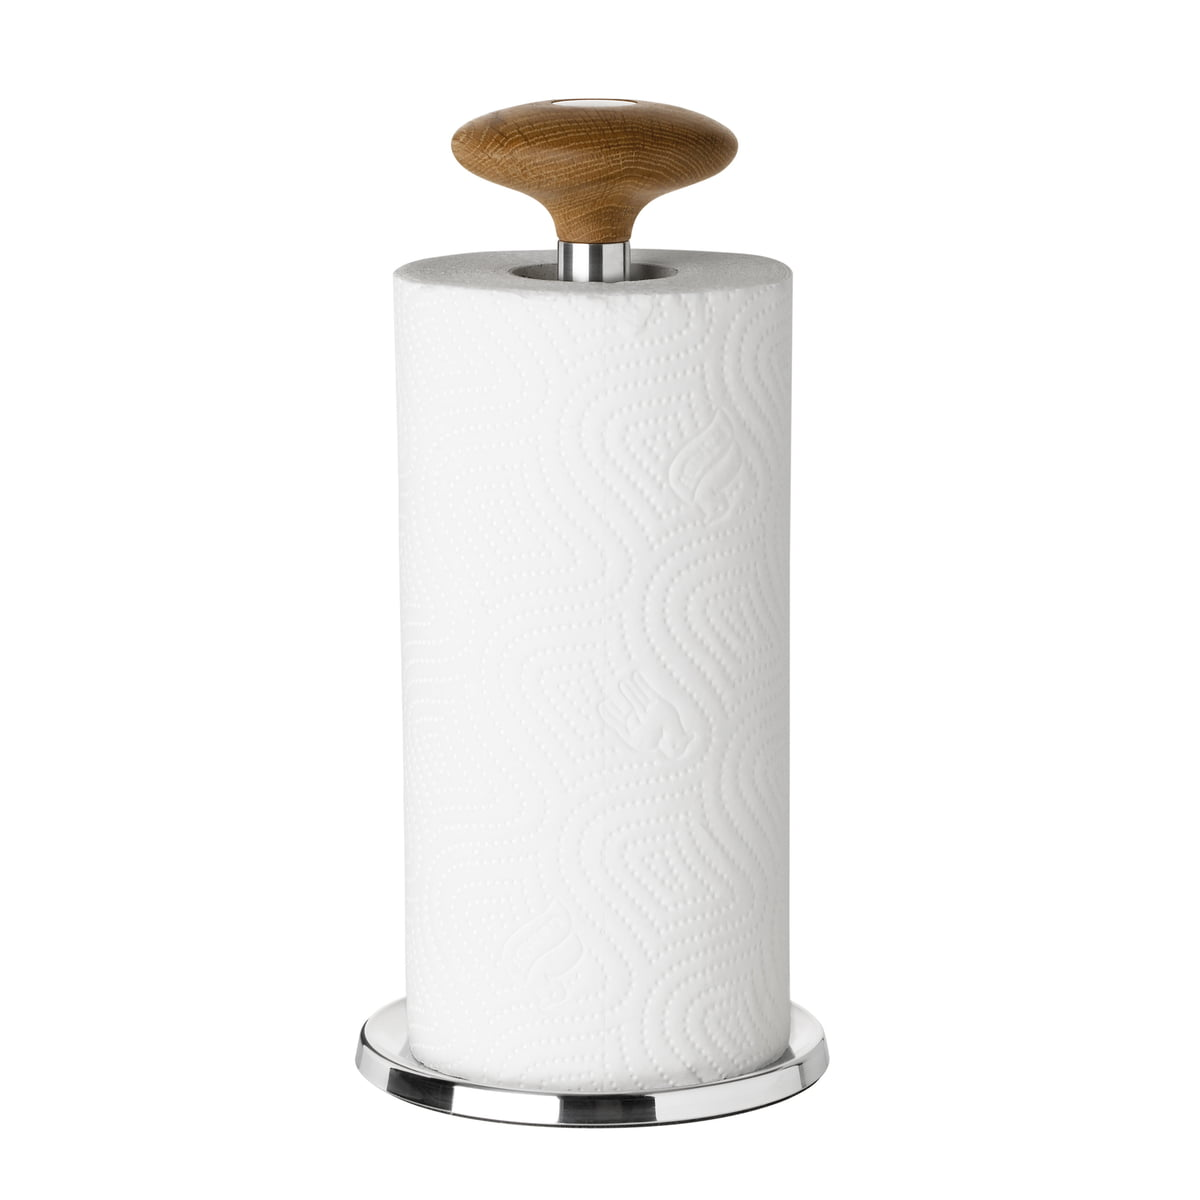 The Forest Kitchen Roll Holder by Stelton